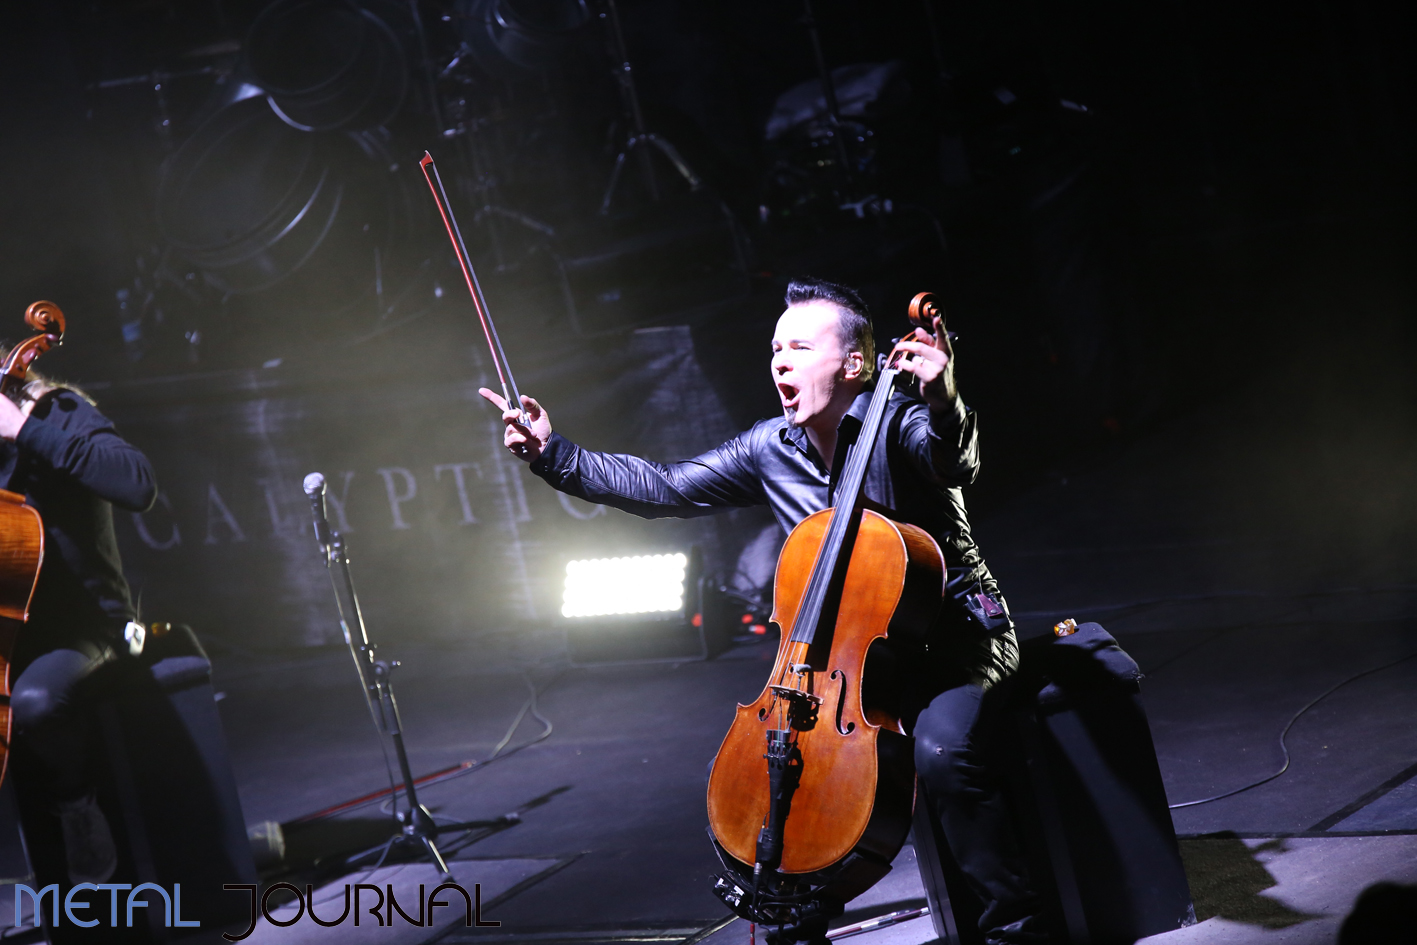 apocalyptica-metal journal pic 6